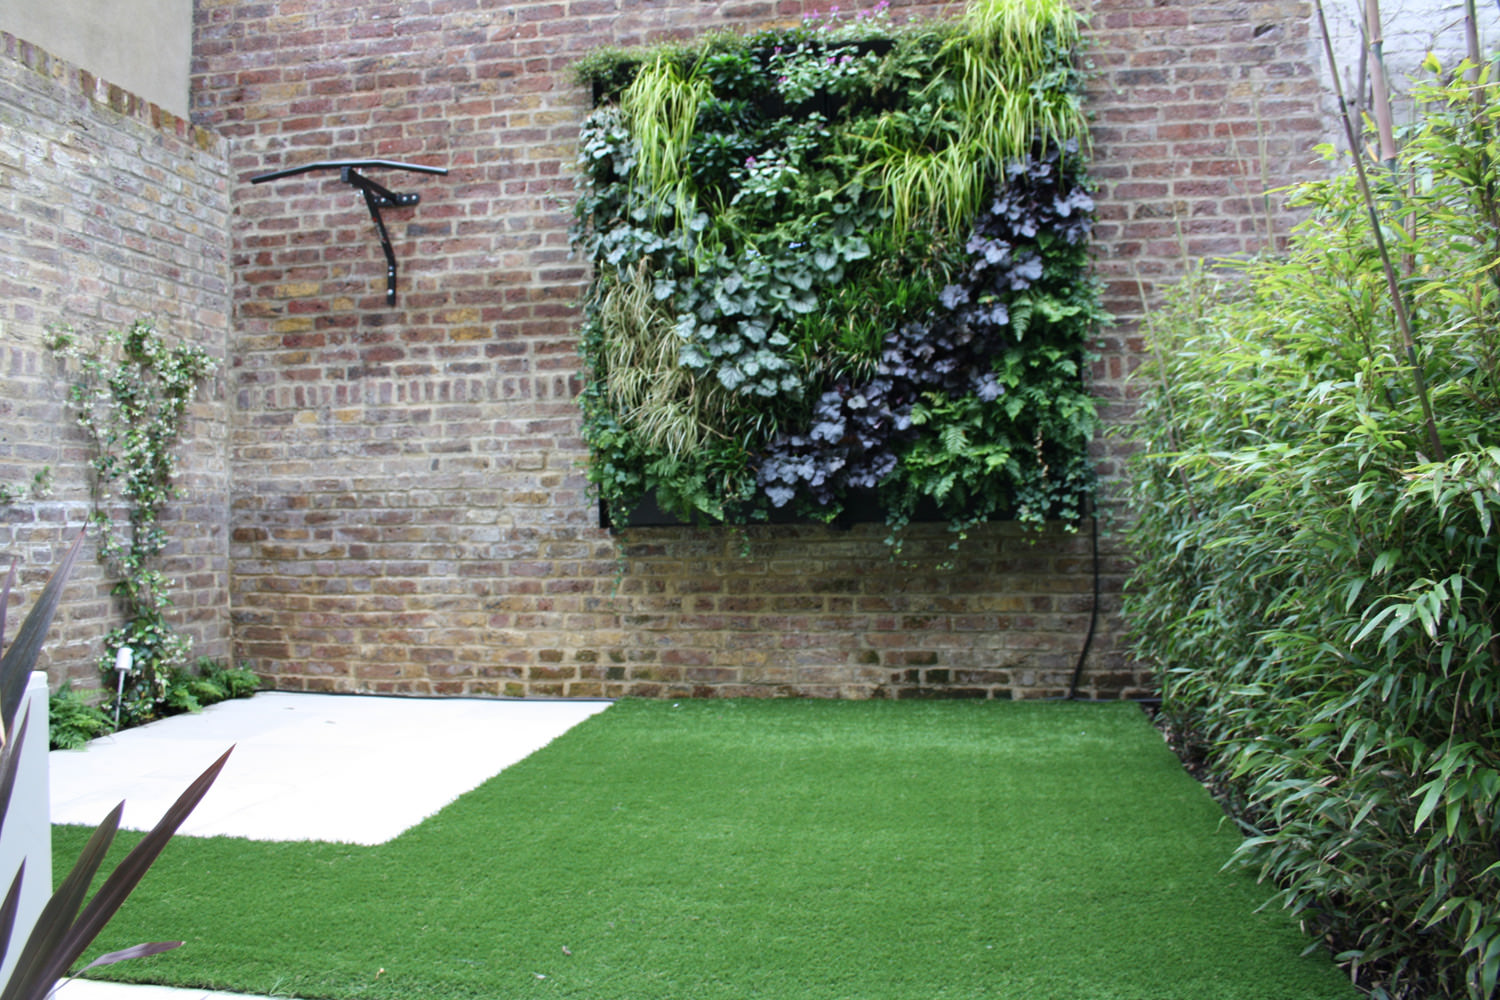 Top 10 london garden designs garden club london for Small shady courtyard ideas